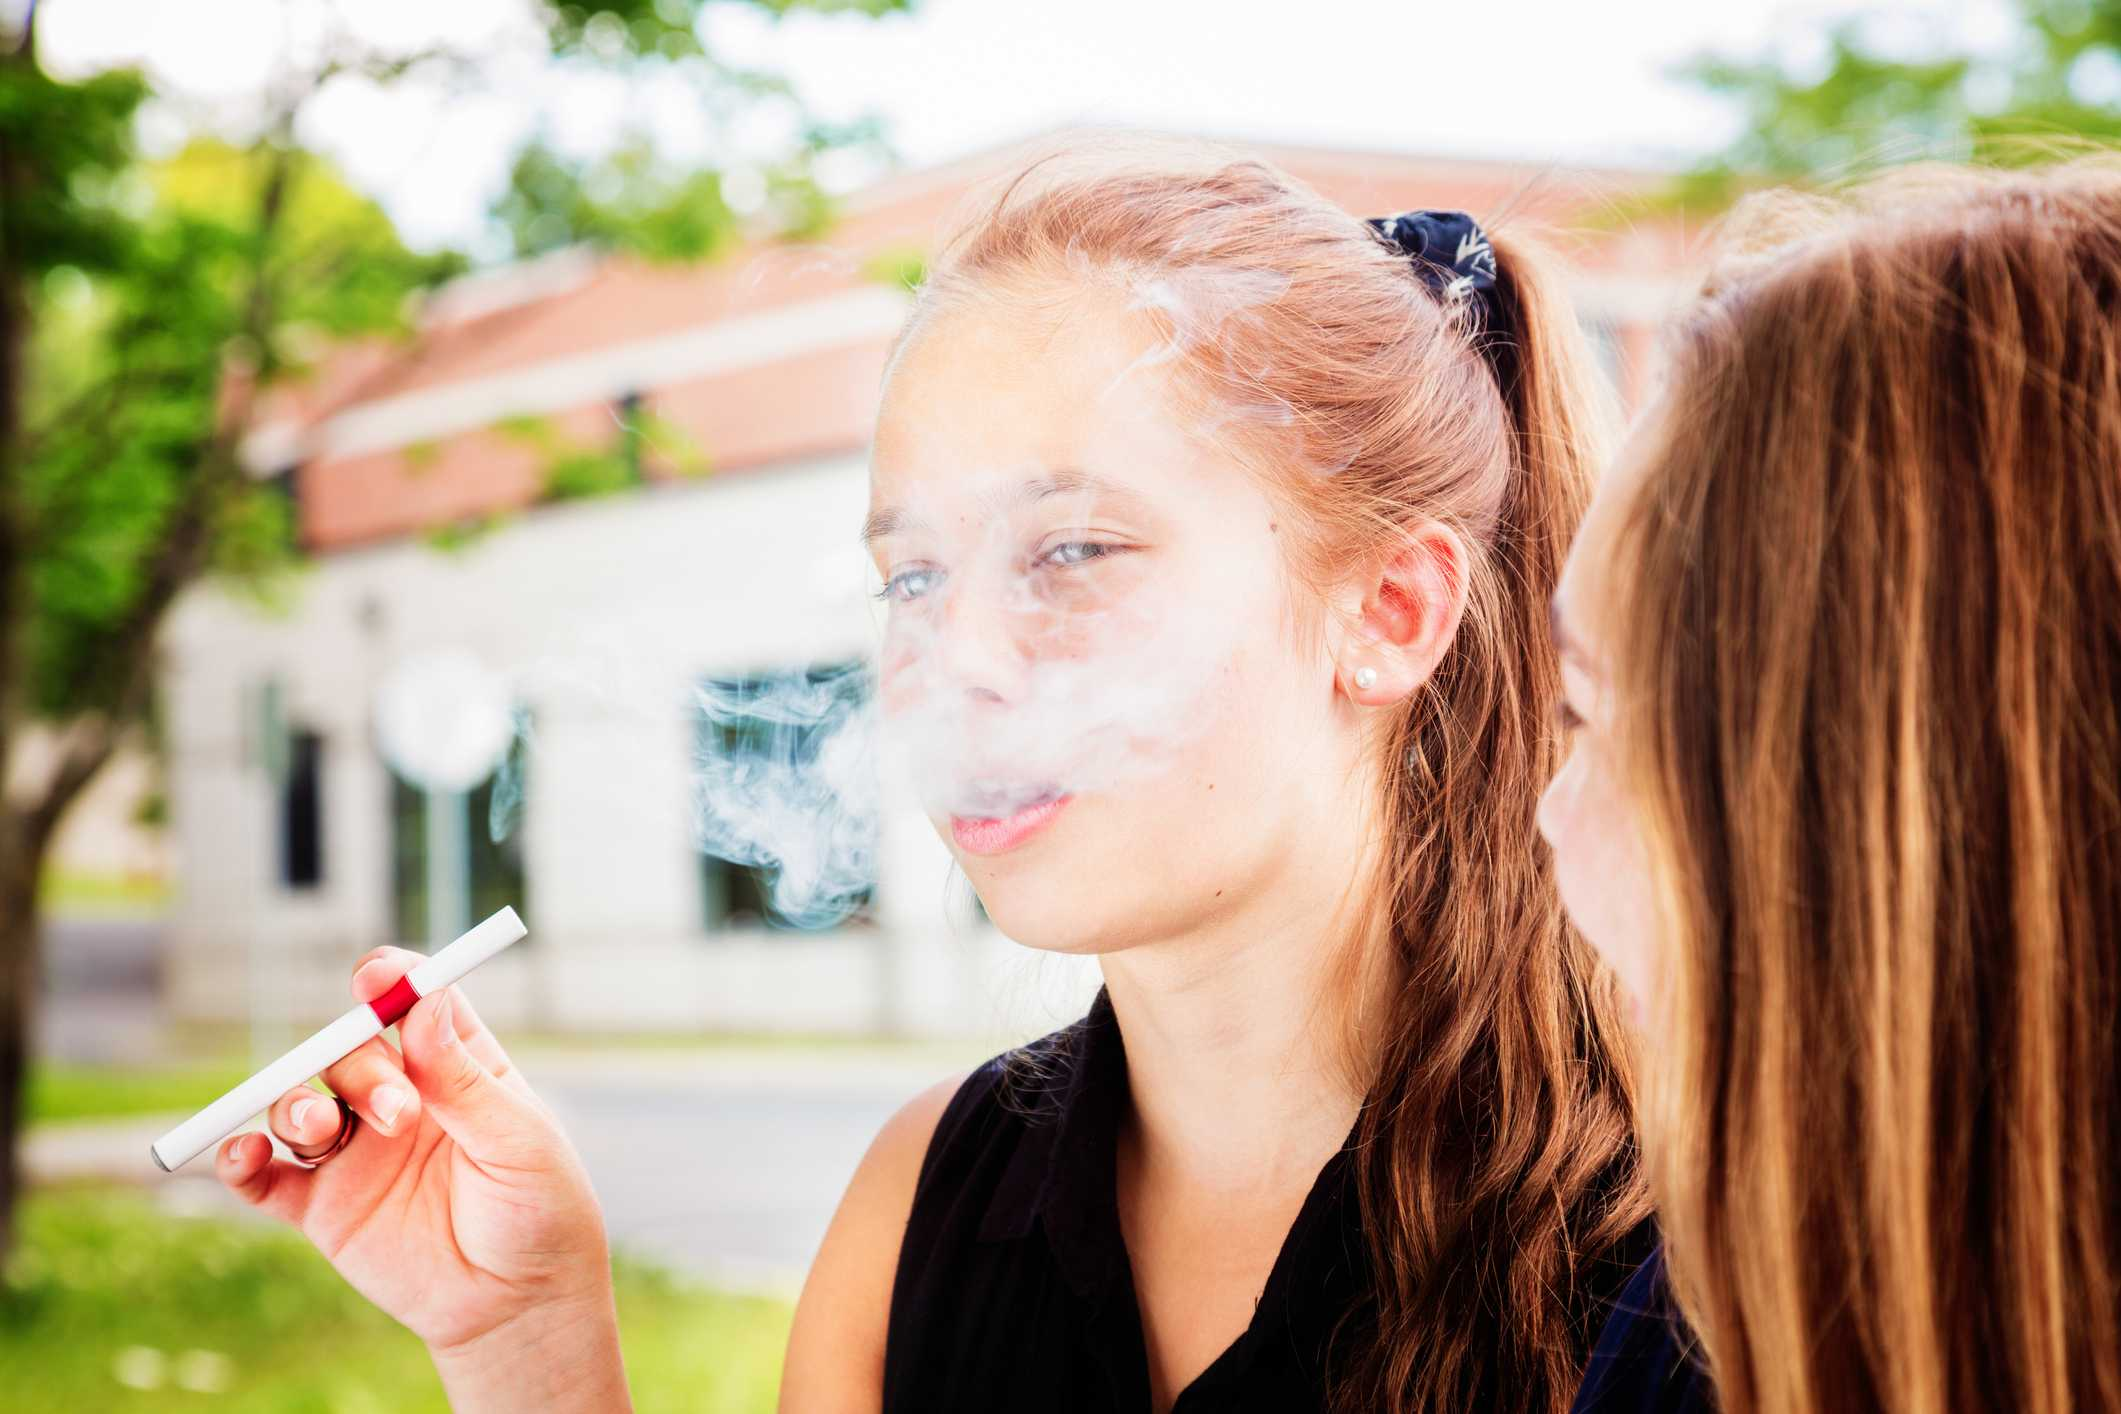 FDA takes 'historic action' on youth e-cigarette 'epidemic'